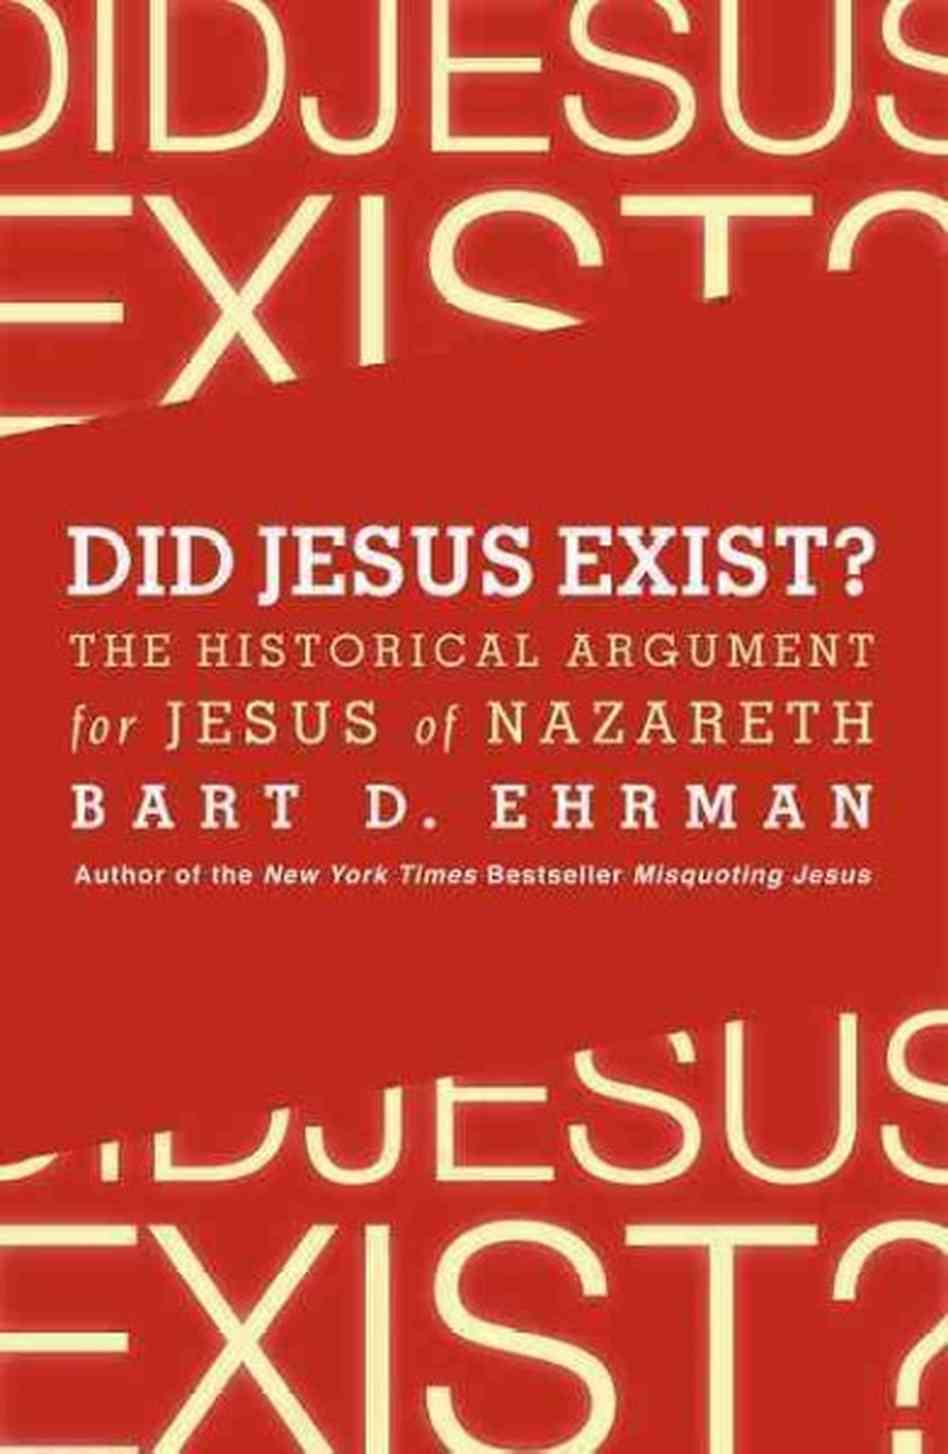 http://www.logosapologia.org/wp-content/uploads/2014/03/Ehrman-Did-Jesus-exist.jpg